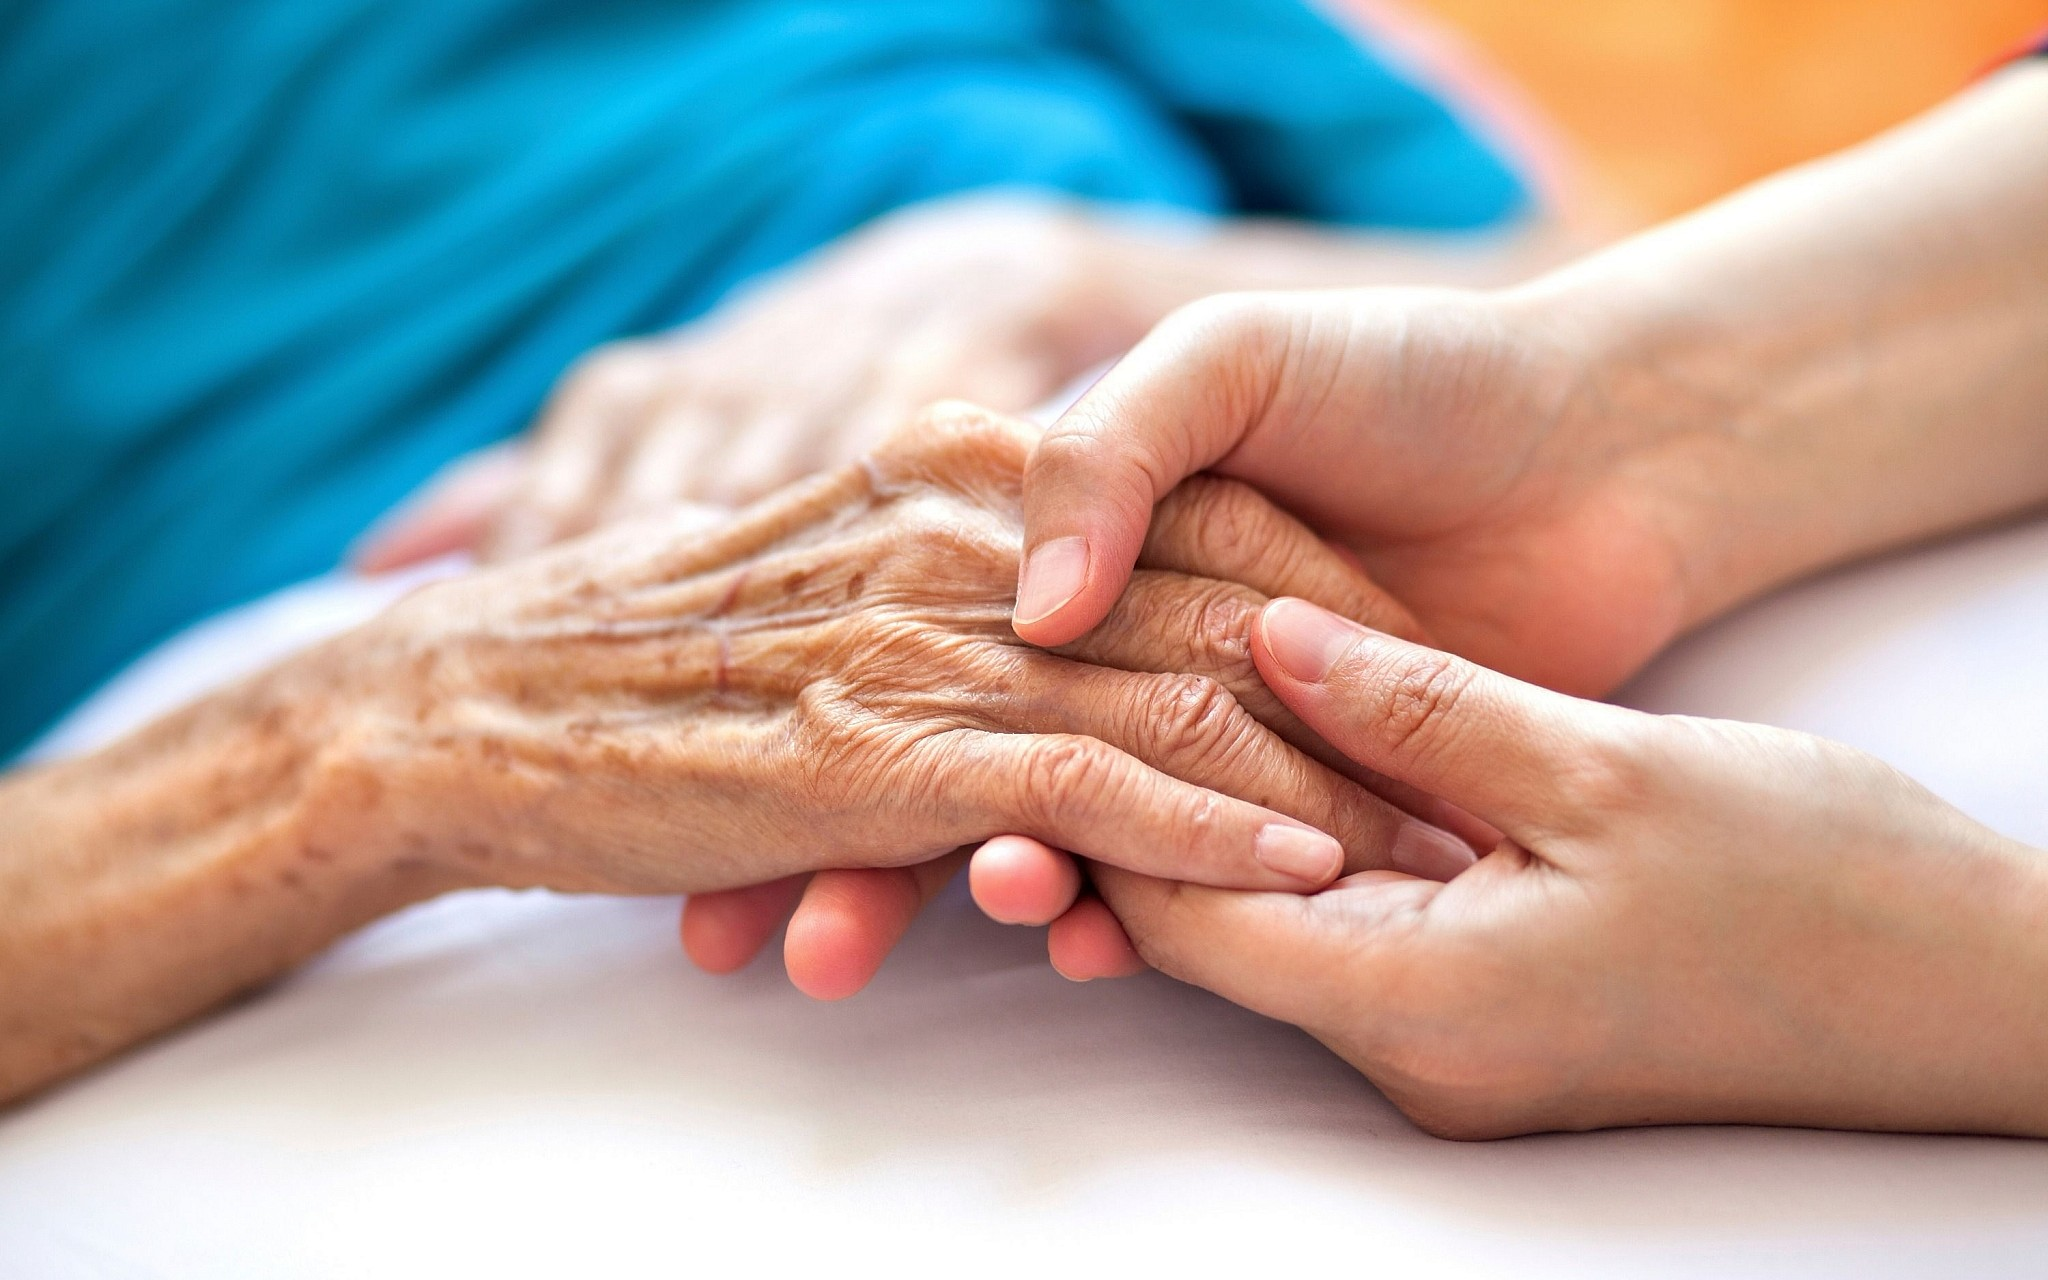 Elderly hands being carefully held by another. Know the signs of elder financial abuse blog post image.